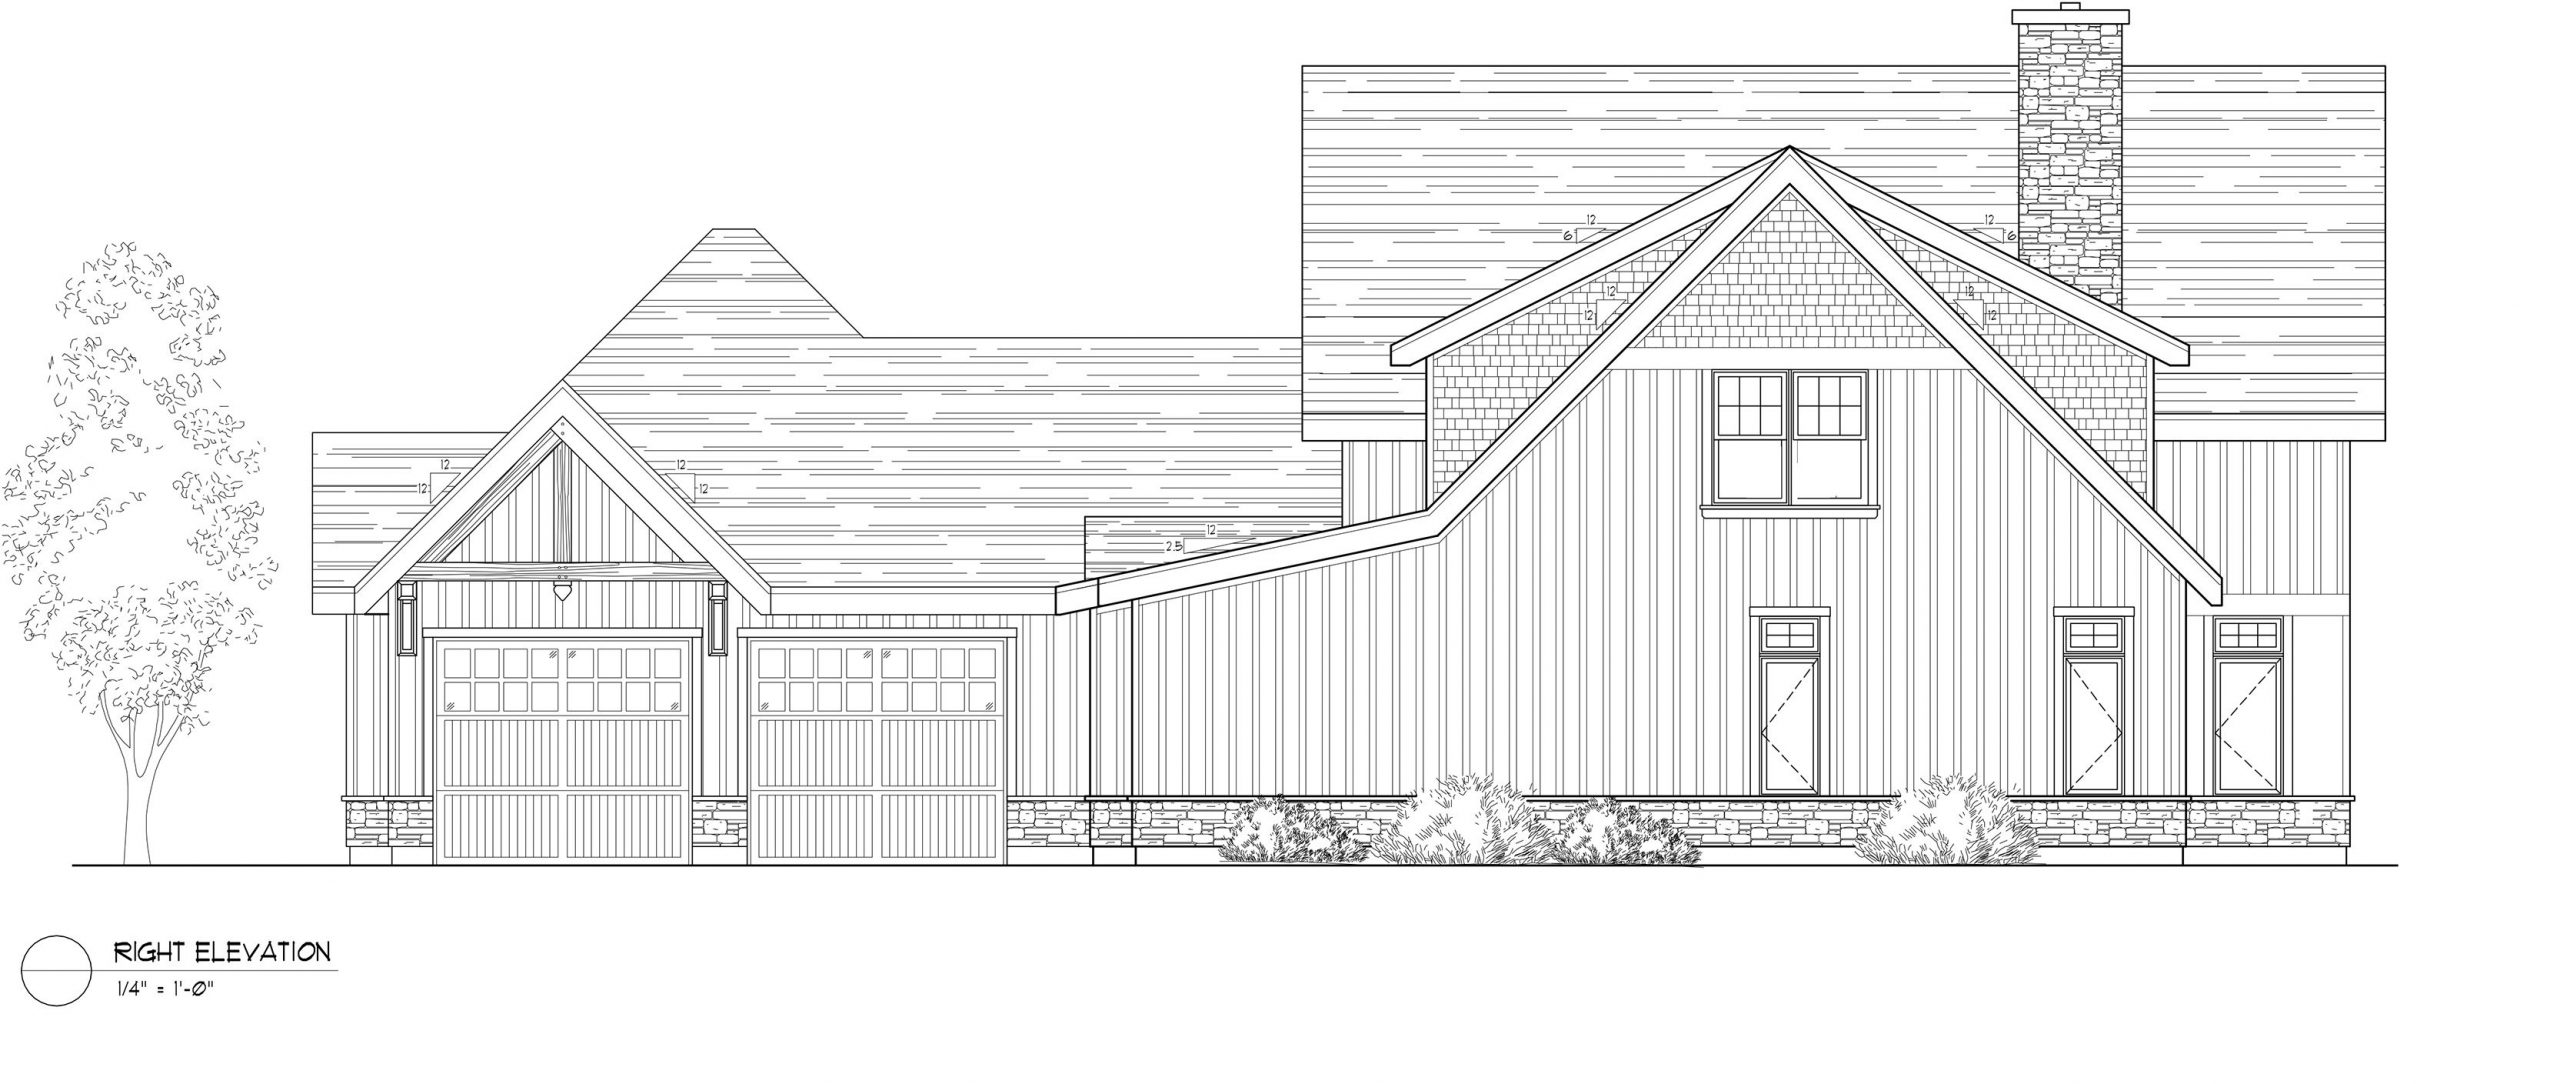 Normerica Timber Frames, House Plan, The Dufferin 2822, Right Elevation